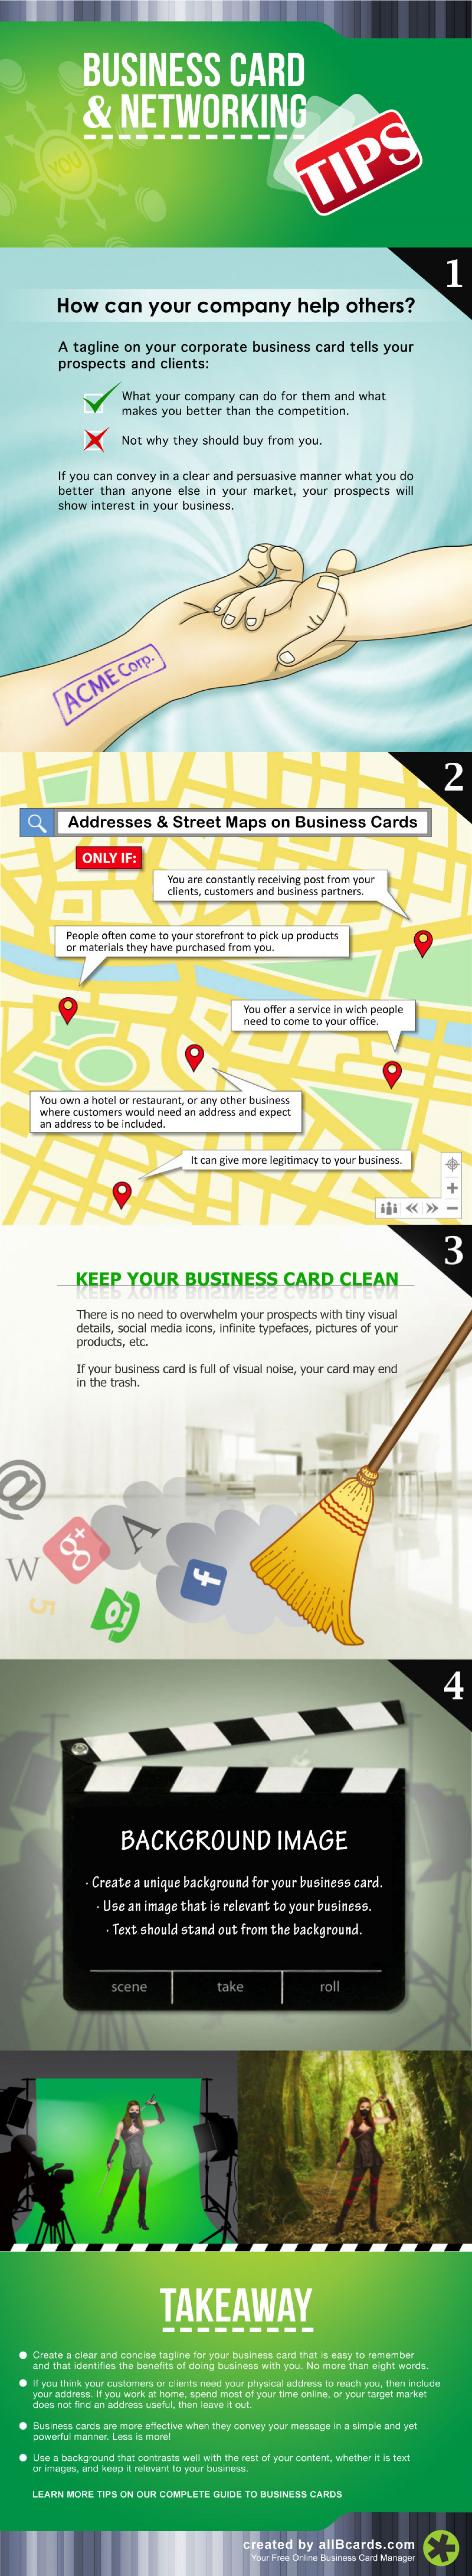 Turn Your Business Cards into Valuable Relationships Infographic